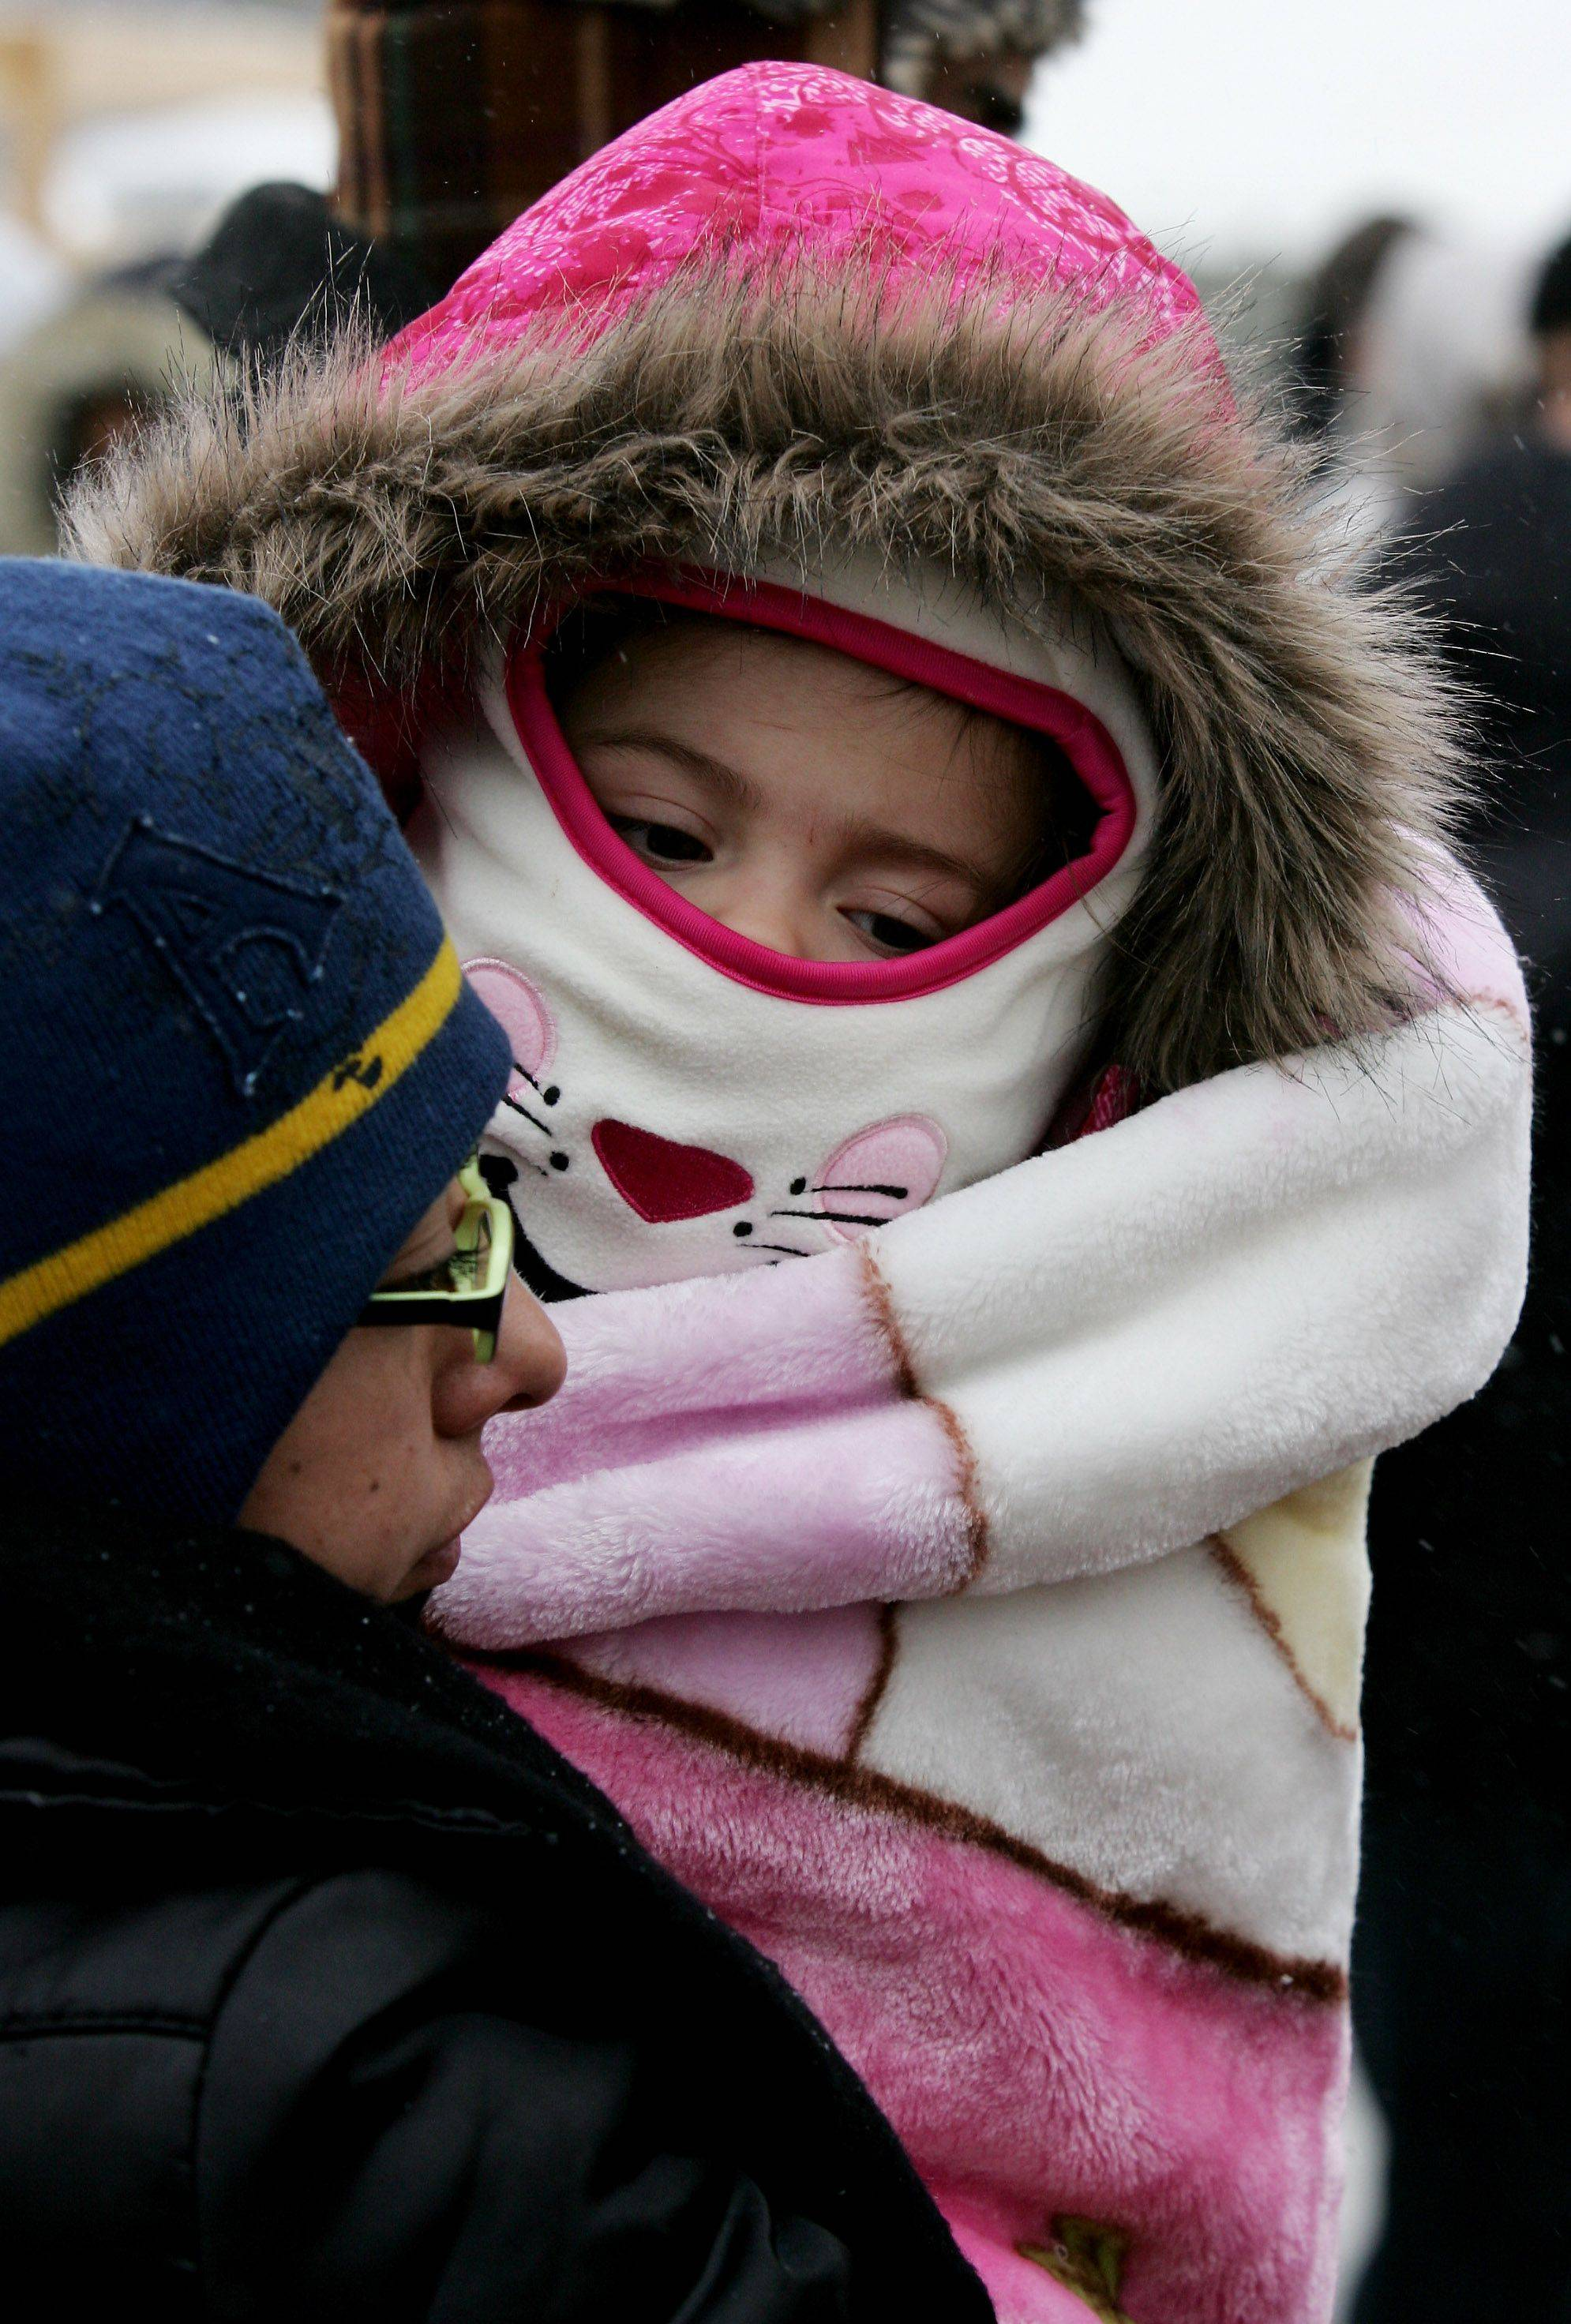 Ariadna Galvan of West Chicago holds her daughter Neftaly, 15-months-old, who is bundled up for the cold during the second day of the Shrine of Our Lady of Guadalupe event Sunday at Maryville Academy in Des Plaines.